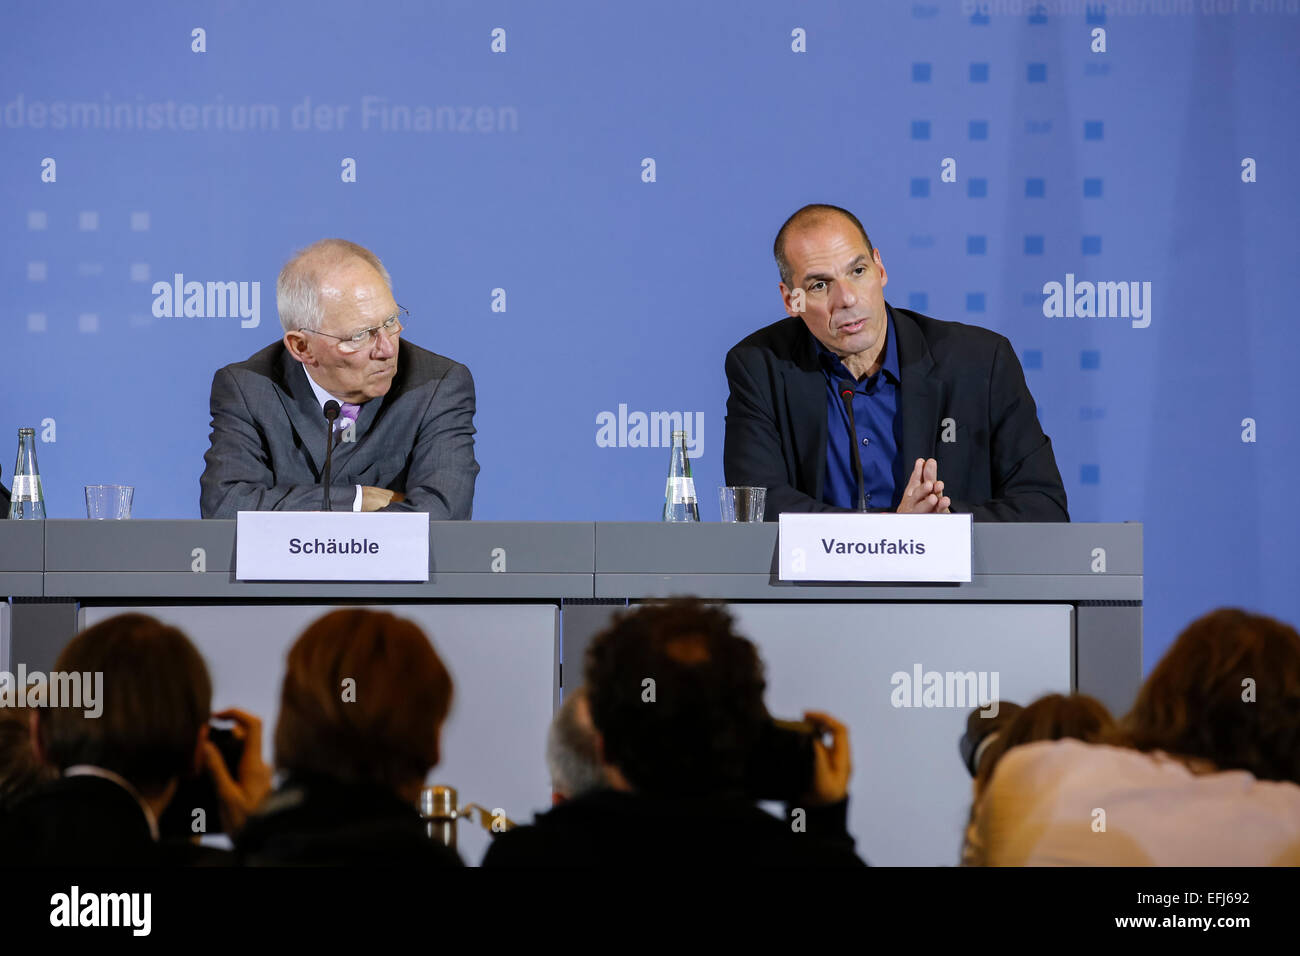 Berlin, Germany. 05th Feb, 2015. Wolfgang Schäuble (CDU), German Minister of Finance, and Yanis Varoufakis, - Stock Image